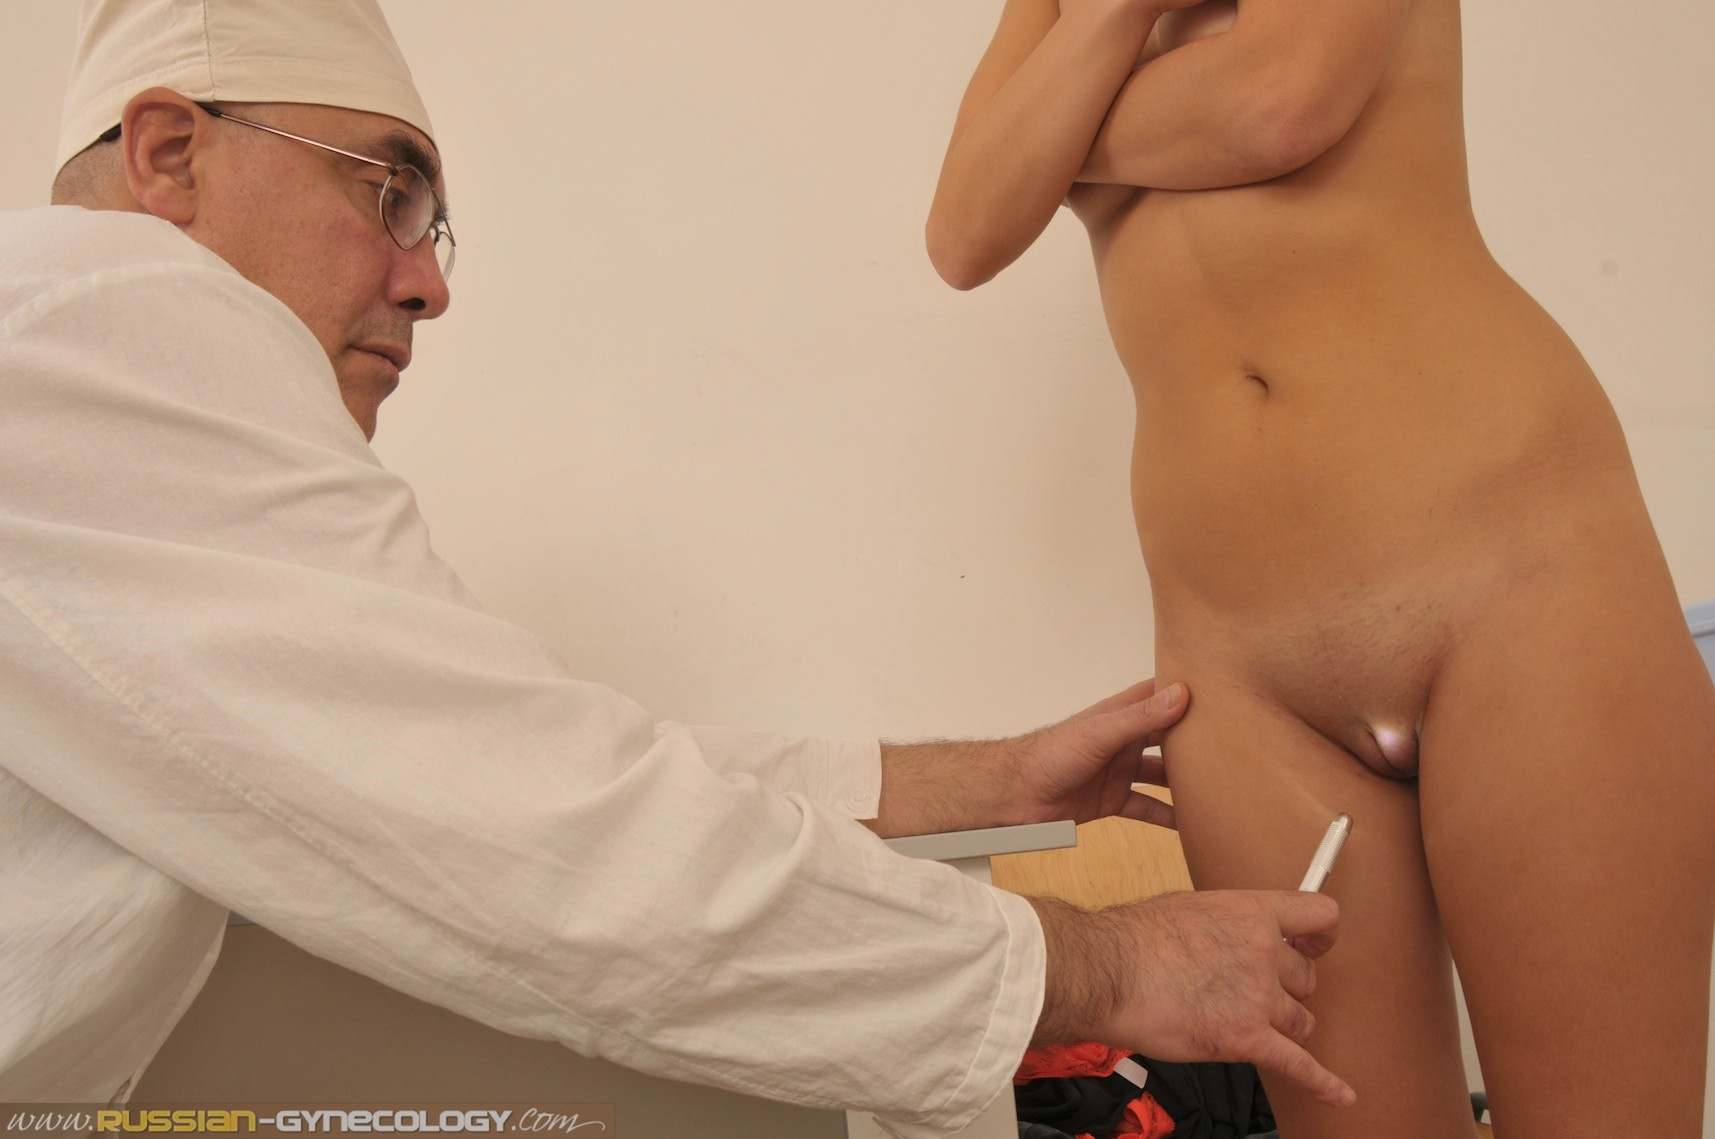 russian gynecology site hg galleries 005 photo09